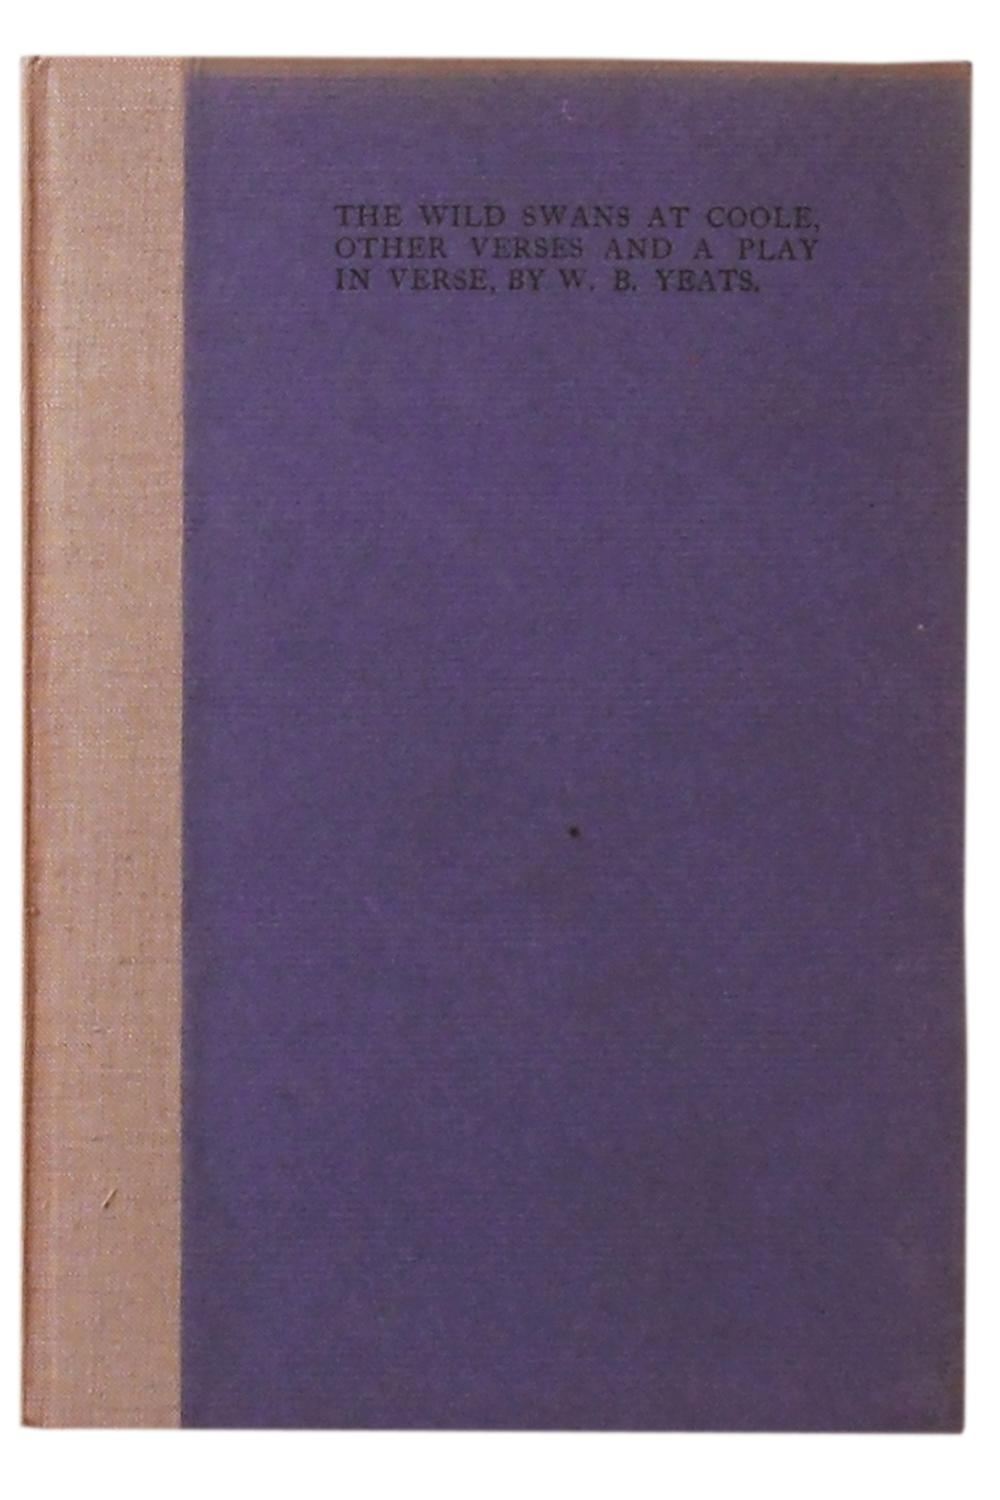 The Wild Swans at Coole by Yeats - AbeBooks